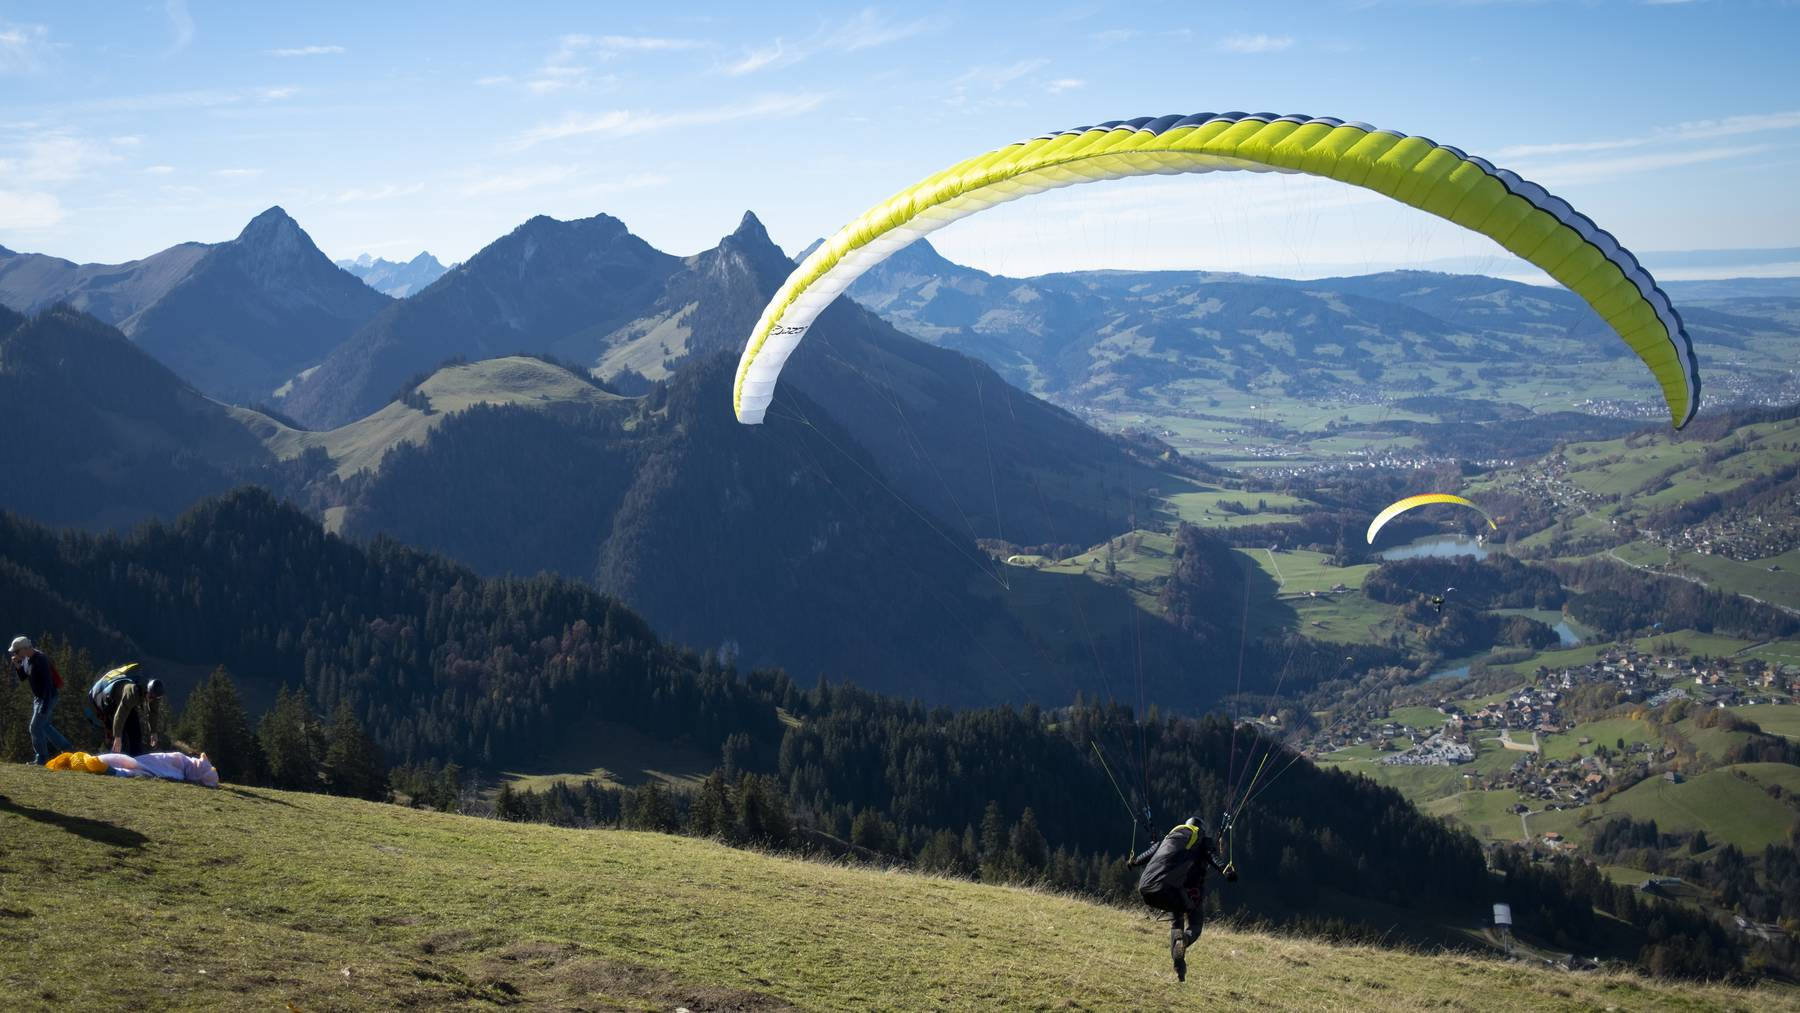 Tourists and paragliders enjoy a sunny autumn weather day in front of Swiss Alps mountains during the second wave pf the coronavirus disease (COVID-19) outbreak, in Charmey, Fribourg, Switzerland, Saturday, October 31, 2020.